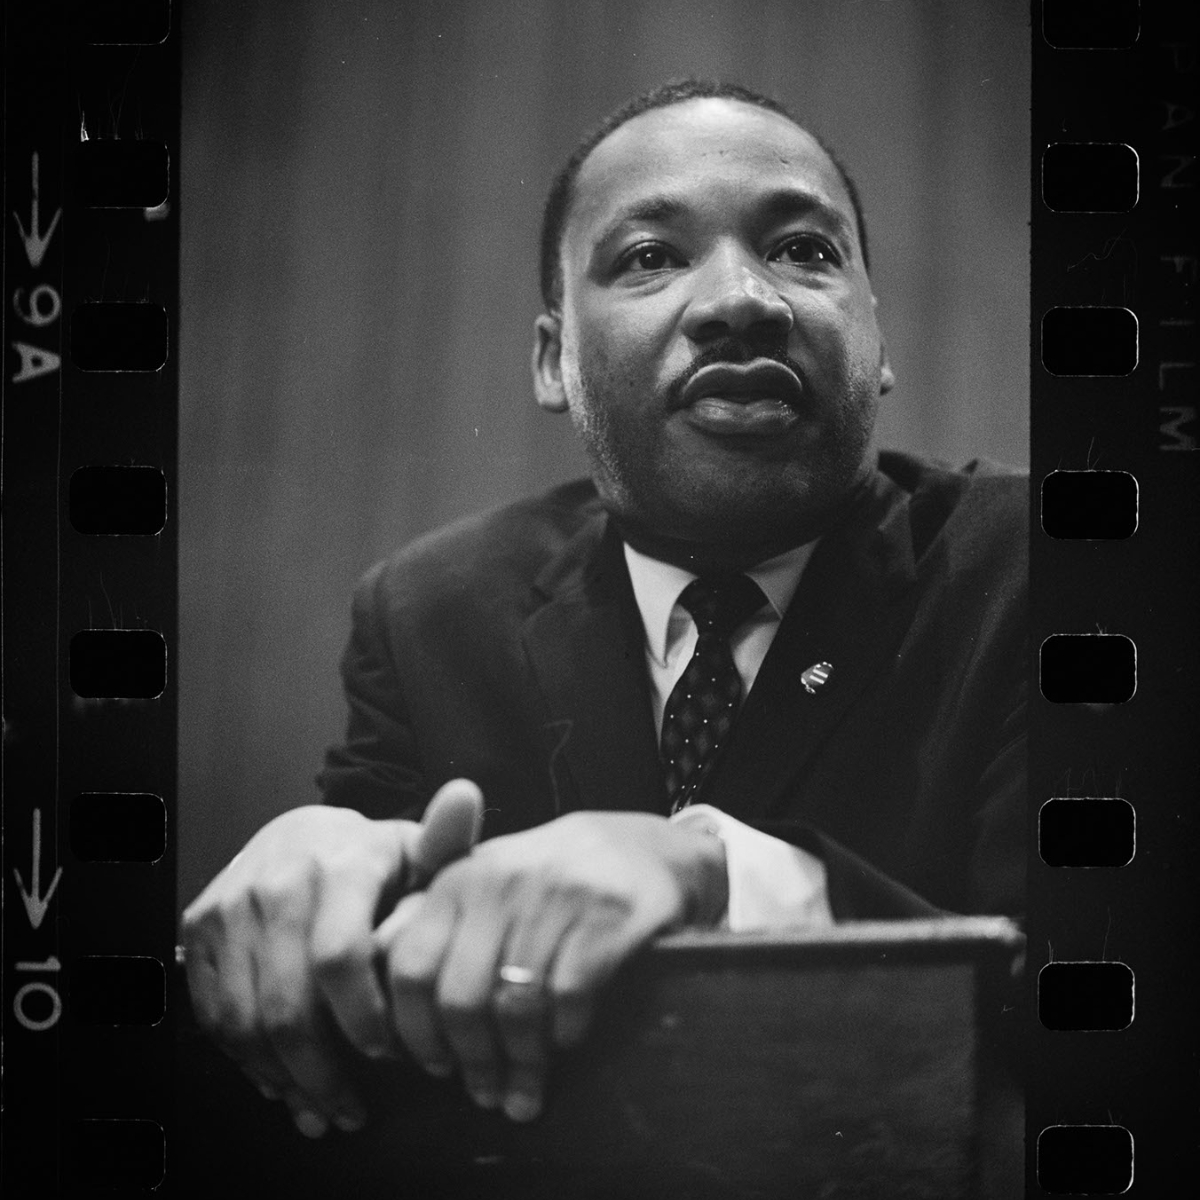 Martin Luther King press conference. Negative by Marion S. Trikoso, 1964. Prints & Photographs Division. https://www.loc.gov/item/2003688129/